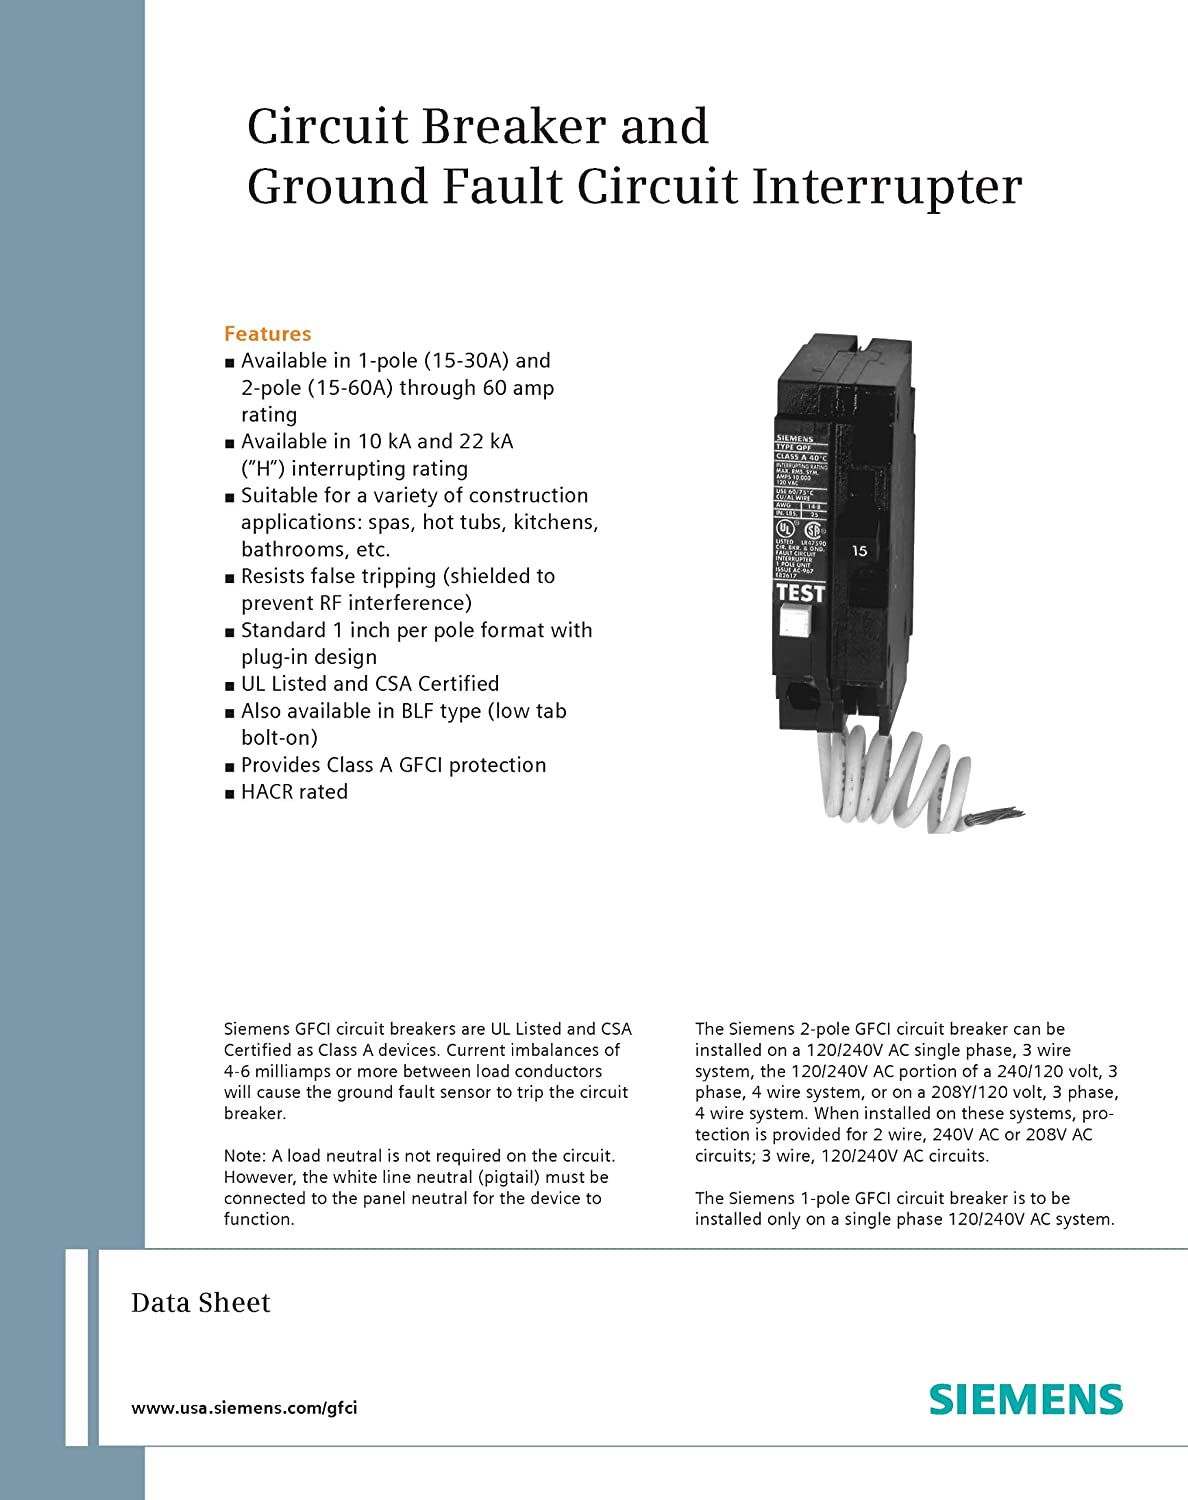 81CNoPv8enL._SL1500_ siemens qf220 20 amp 2 pole 240 volt ground fault circuit 50 Amp GFCI Breaker Wiring Diagram For at webbmarketing.co